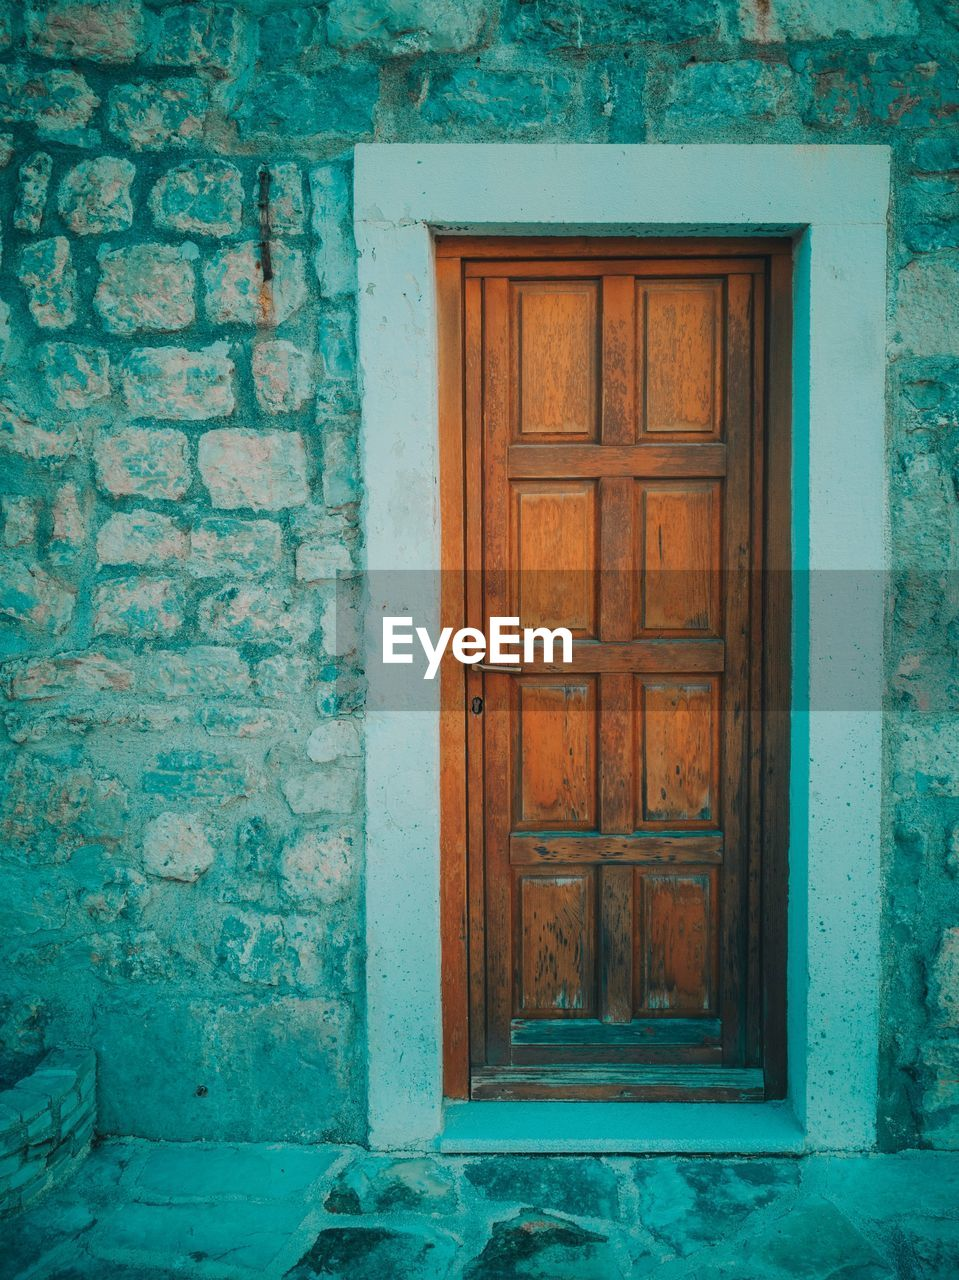 door, building exterior, architecture, built structure, entrance, closed, building, house, wood - material, old, wall - building feature, no people, residential district, security, protection, day, safety, window, outdoors, front door, turquoise colored, window frame